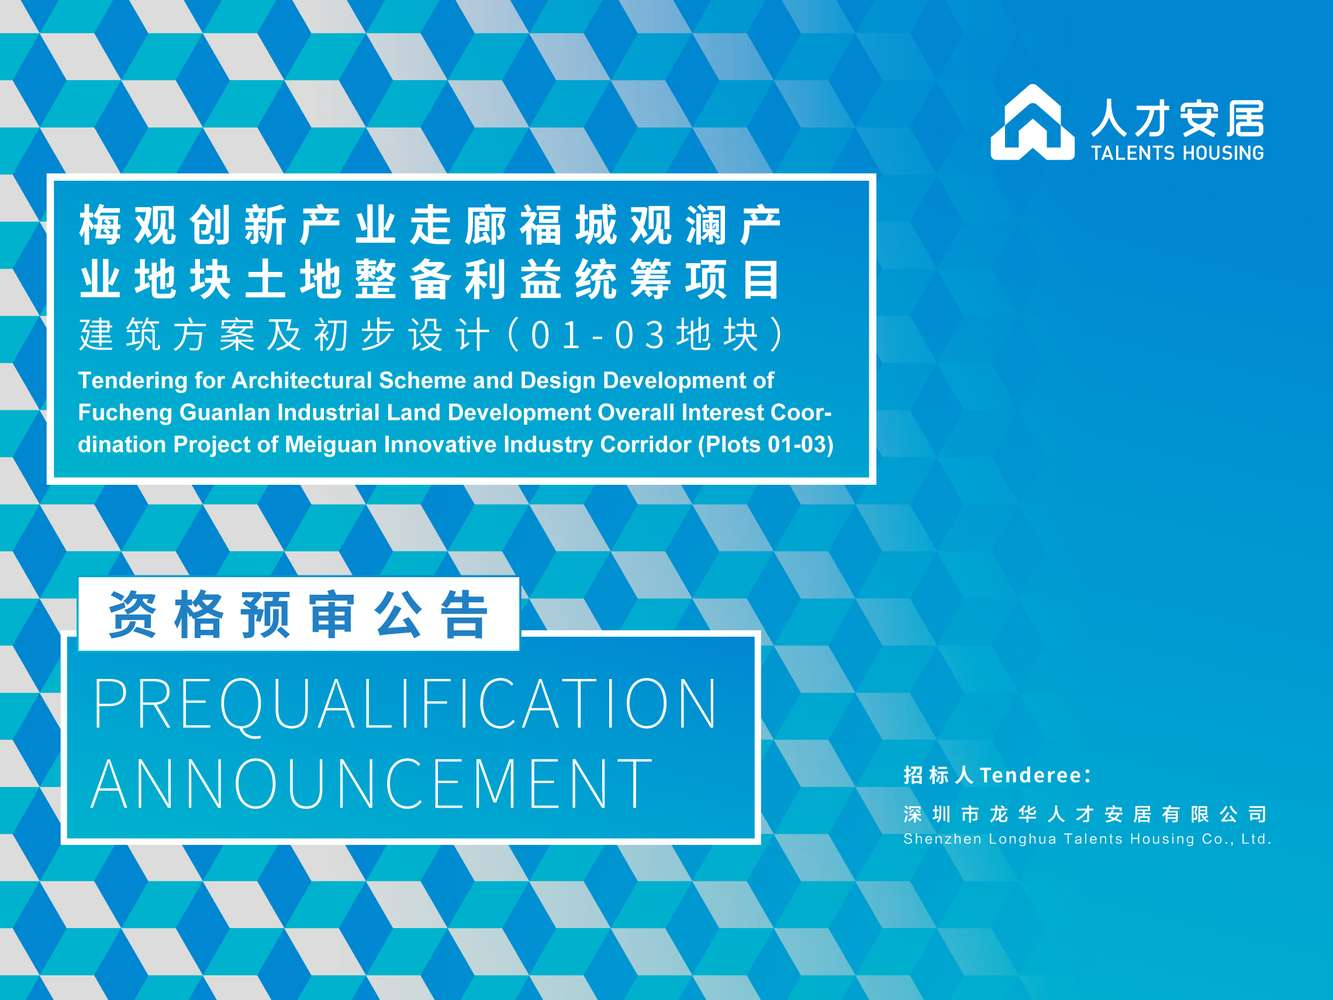 Prequalification Announcement on the Tendering for Architectural Scheme and Design Development of Fucheng Guanlan Industrial Land Development Overall Interest Coordination Project of Meiguan Innovative Industry Corridor (Plots 01-03)